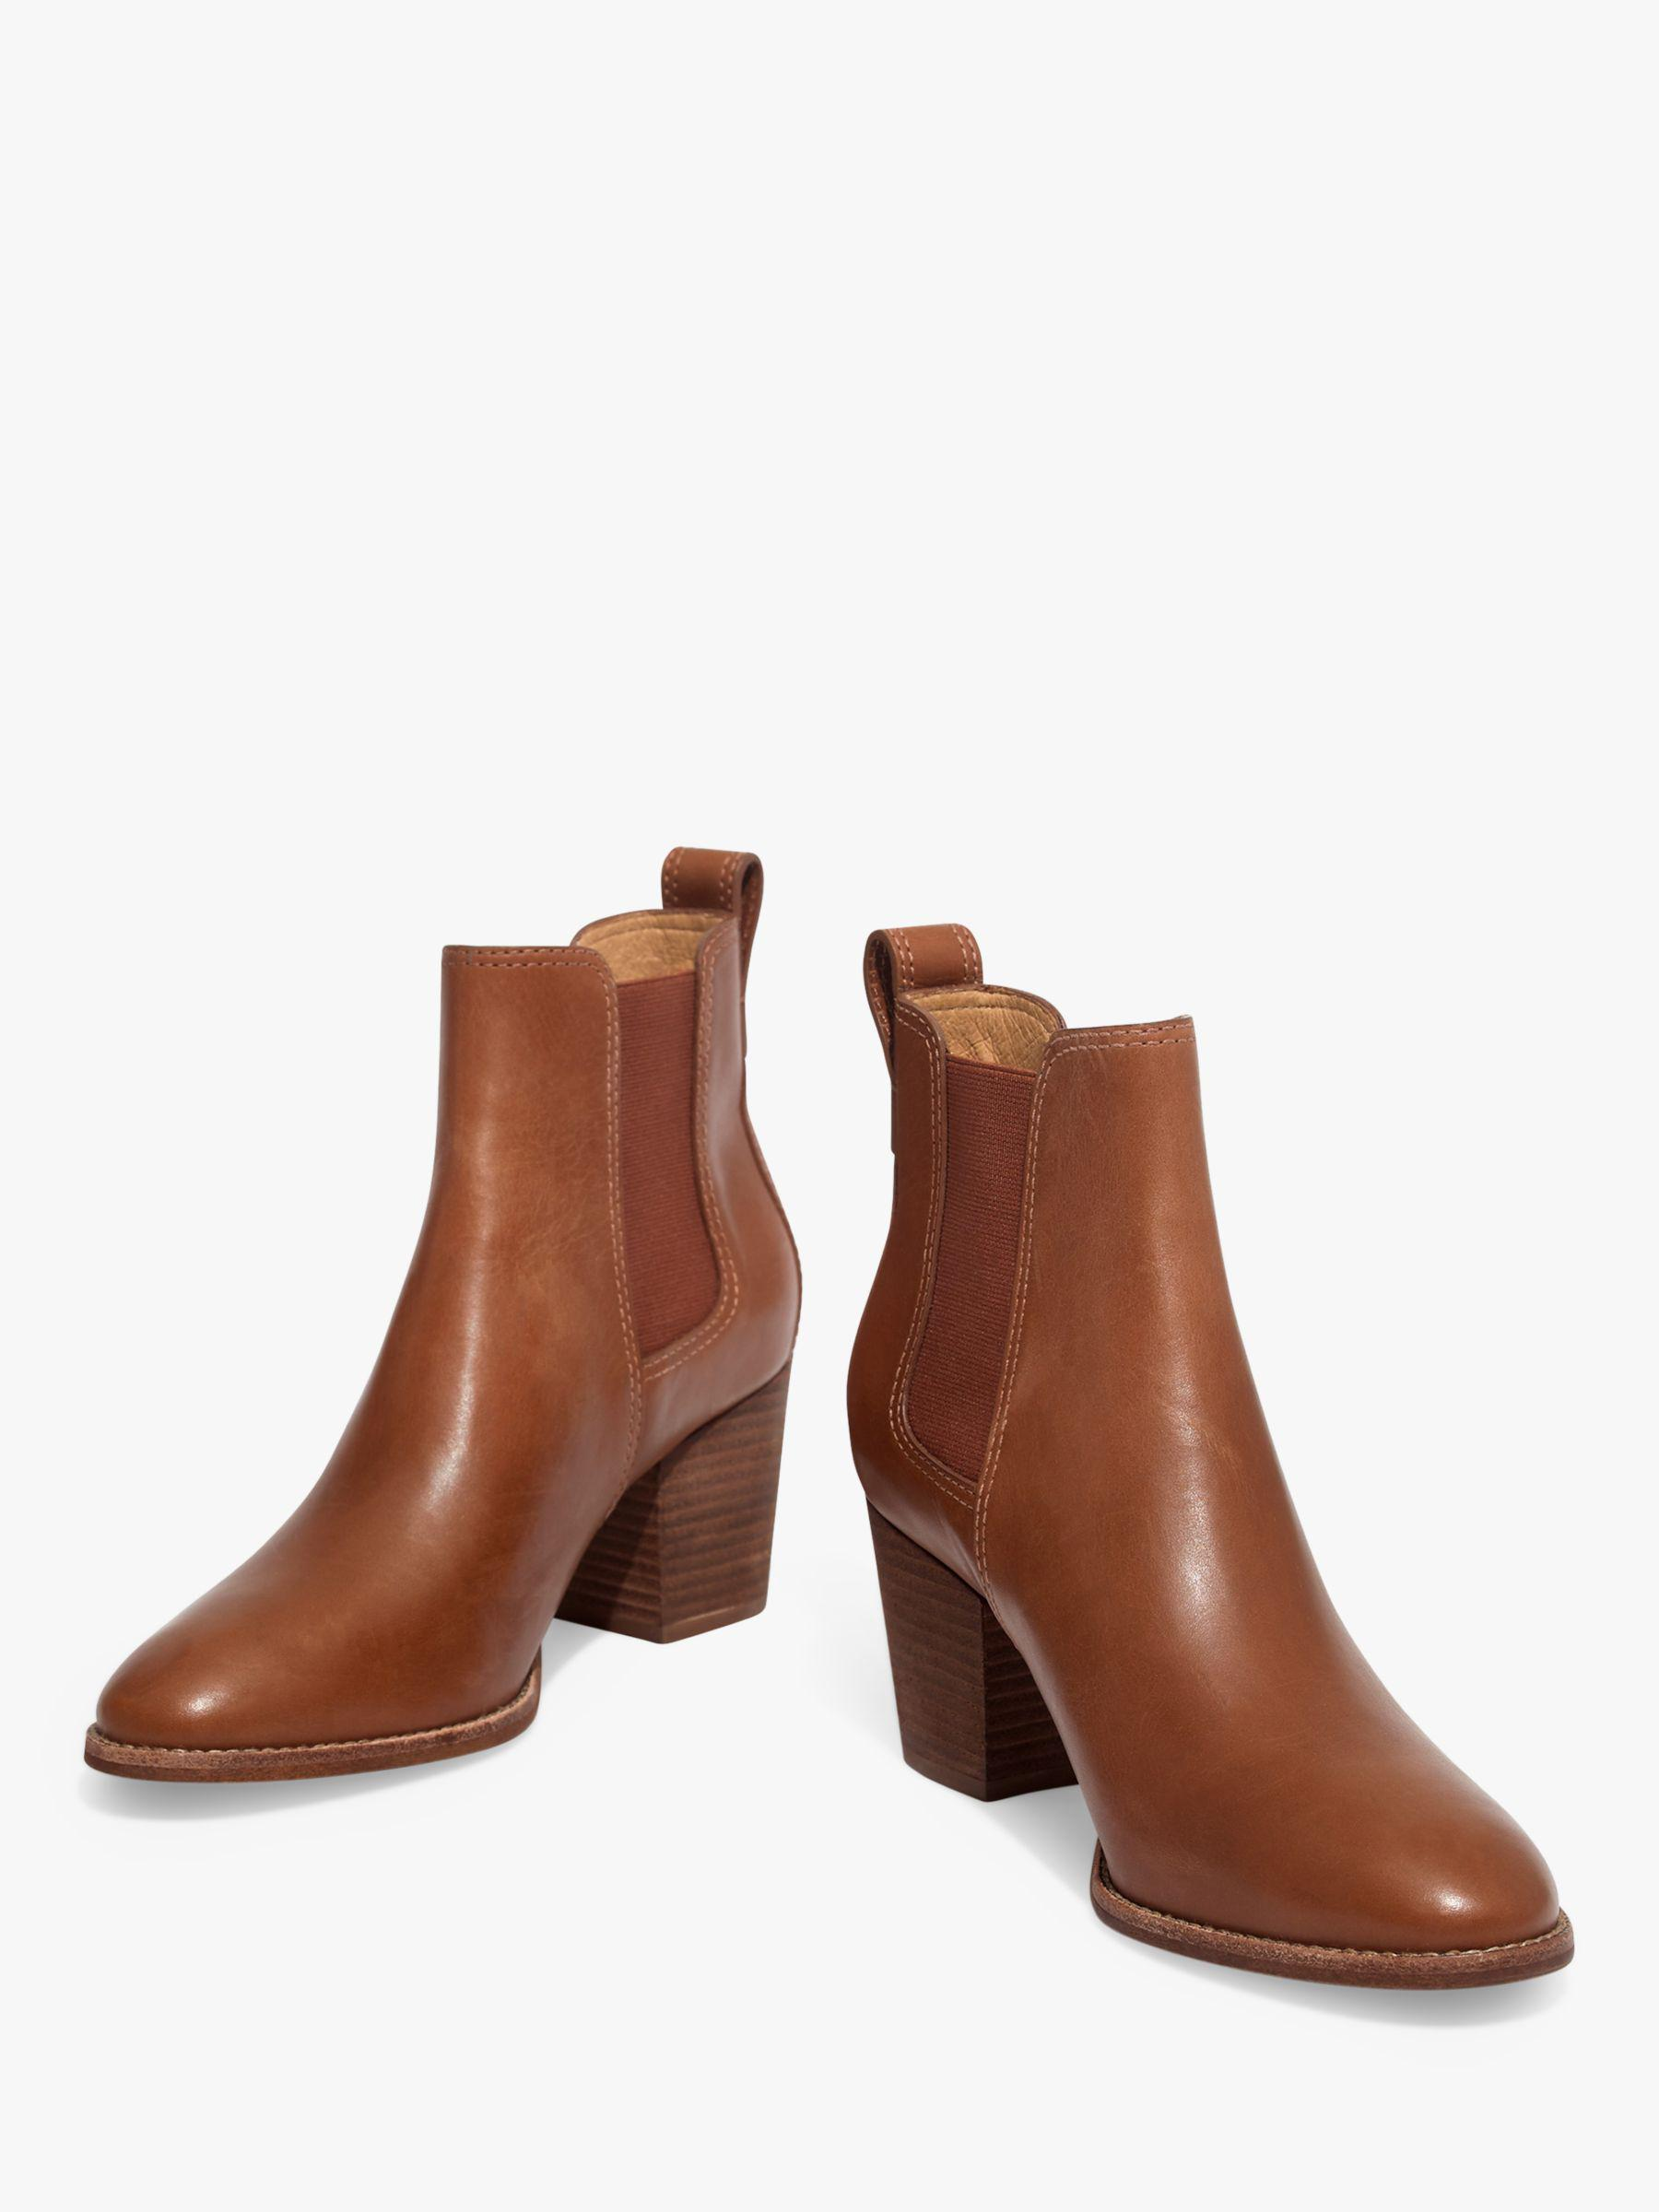 92d4e1d5a Madewell Regan Leather Chelsea Ankle Boots in Brown - Lyst